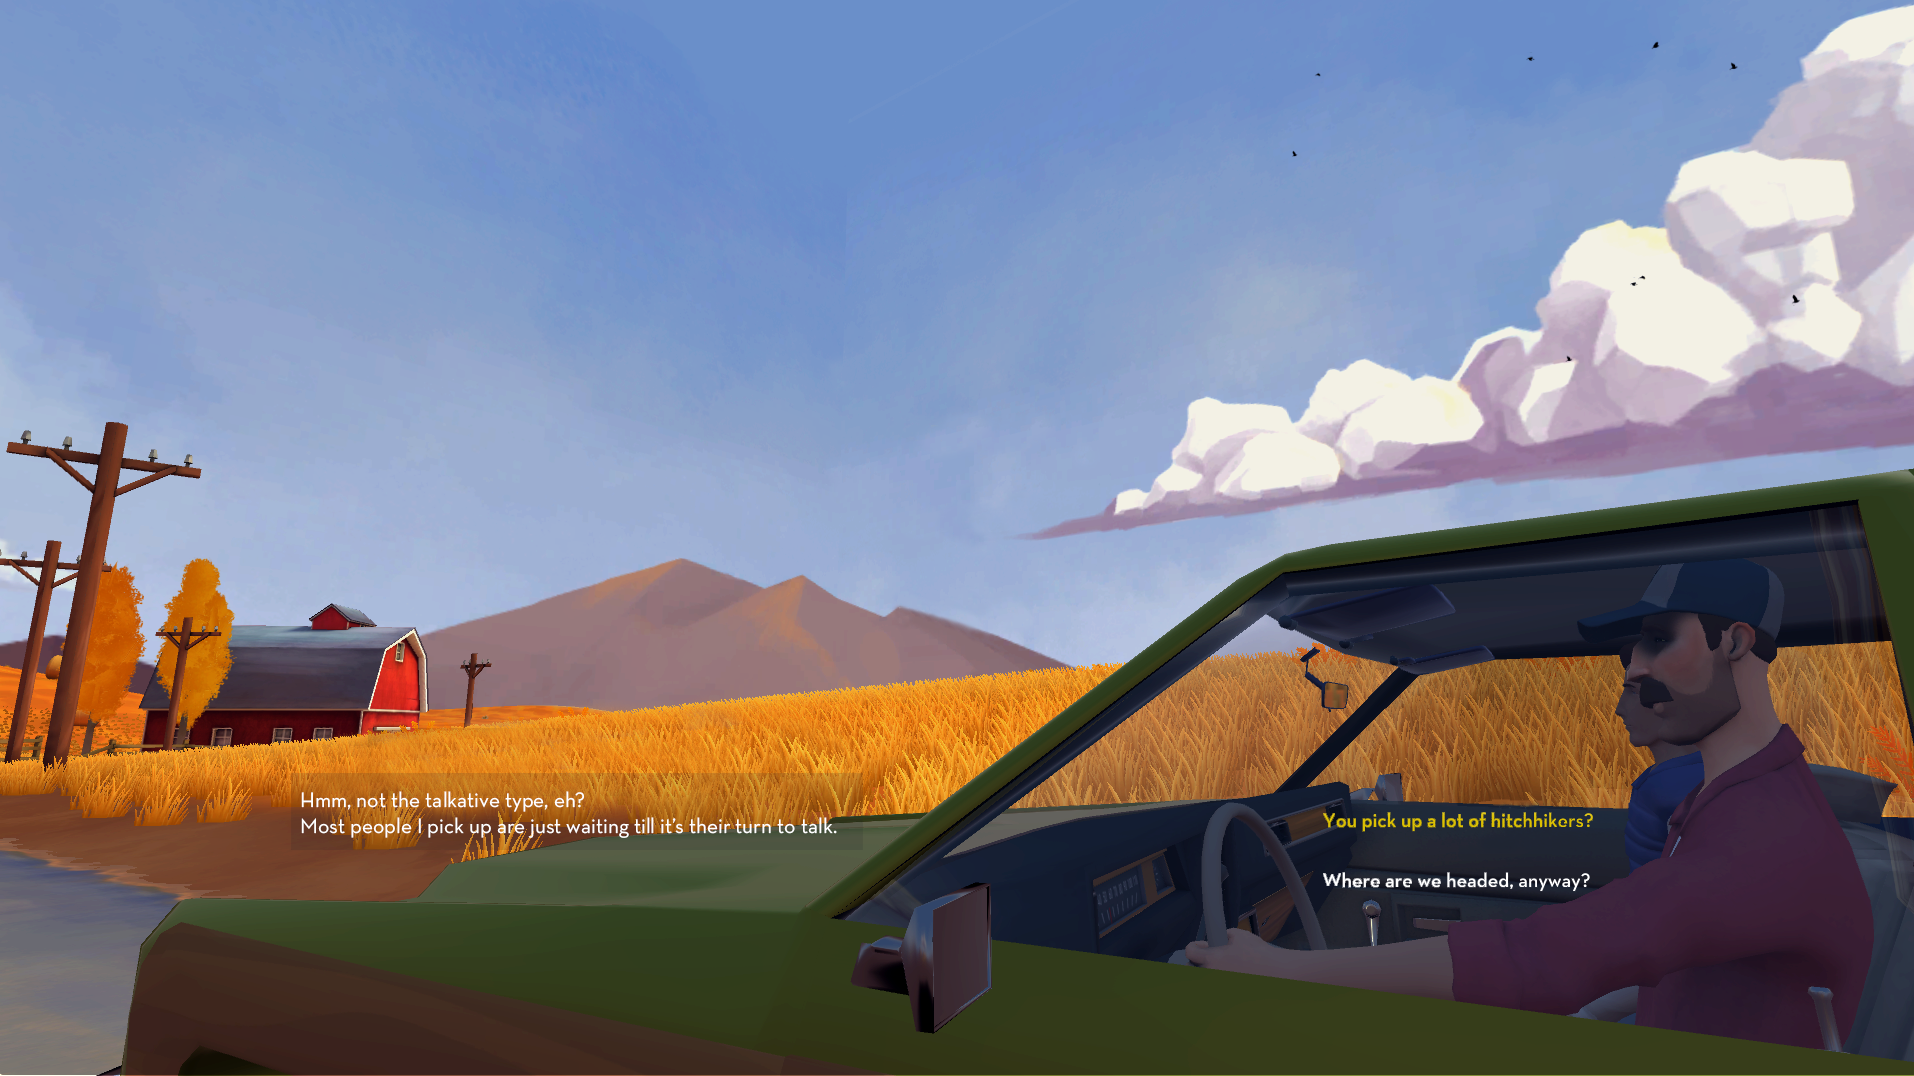 Hitchhiker is an uncanny roadtrip riding onto Apple Arcade later this year